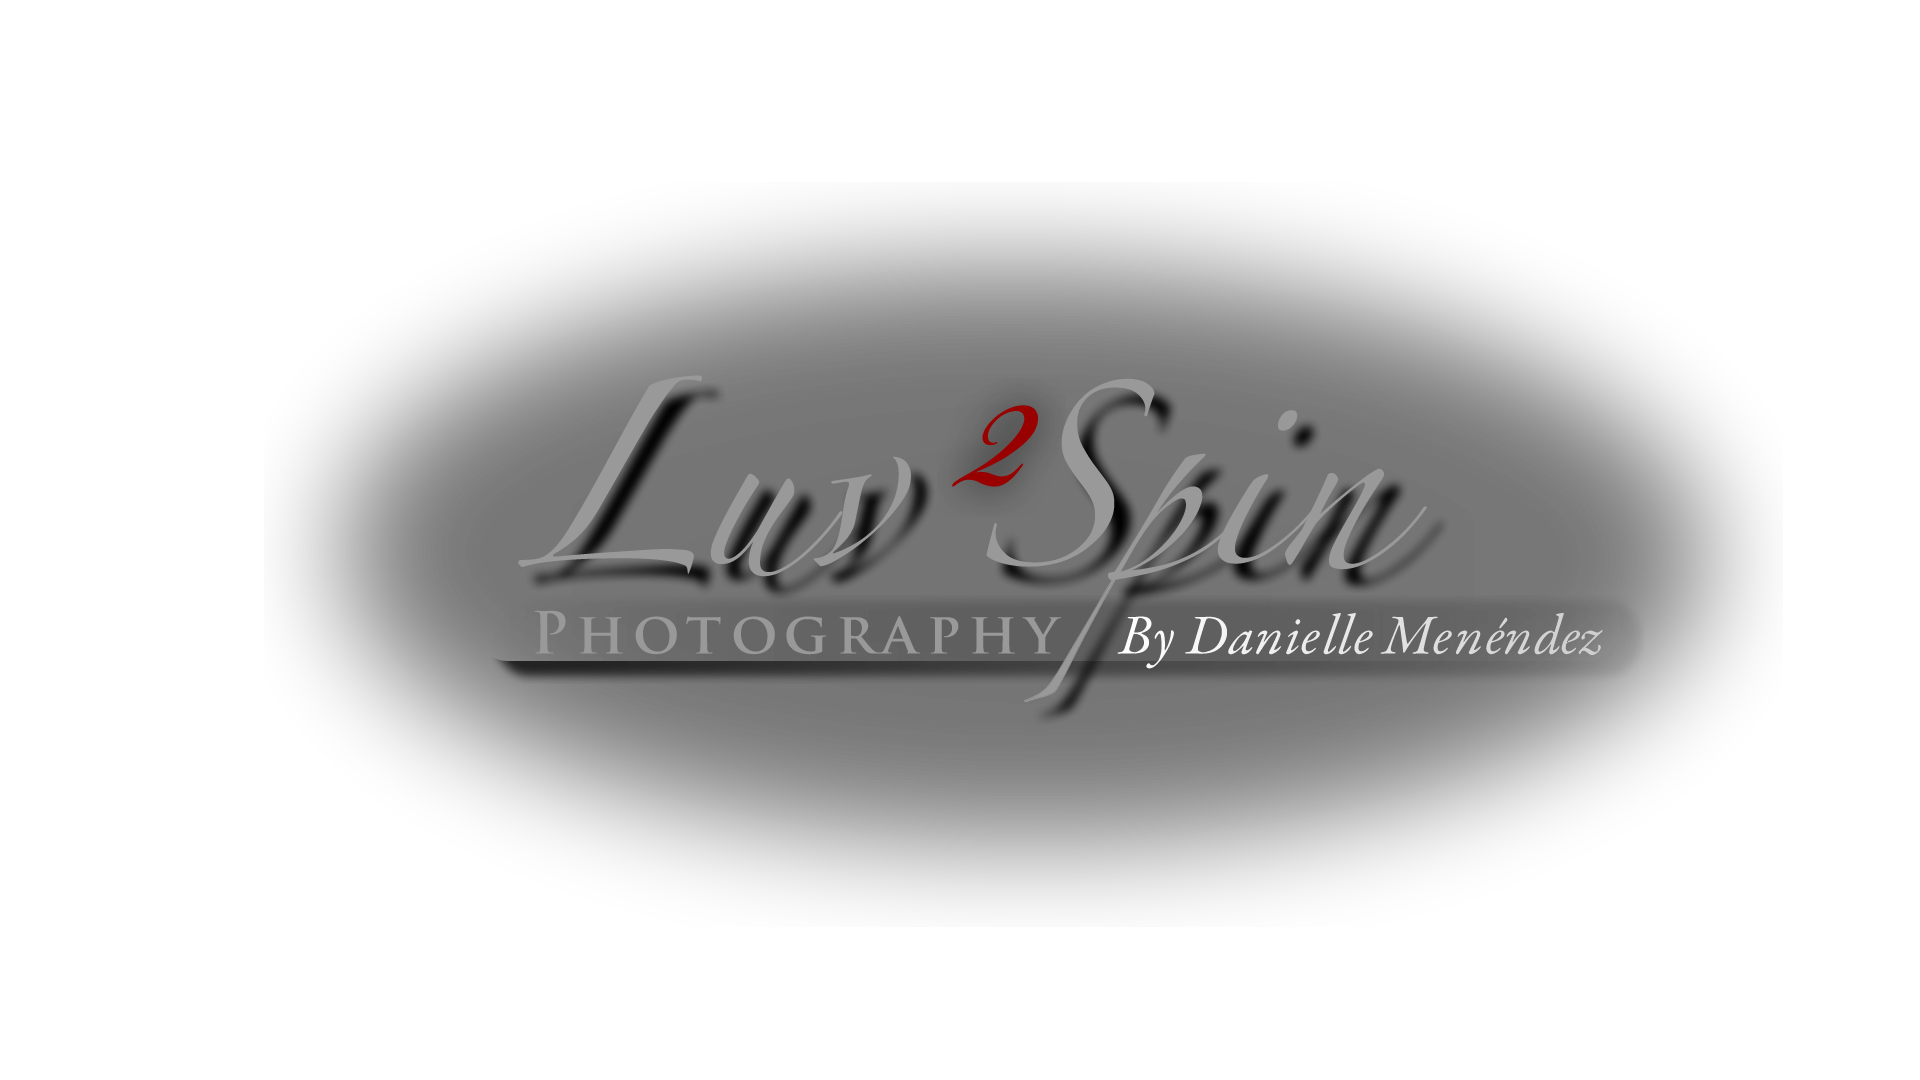 www.Luv2Spin.com